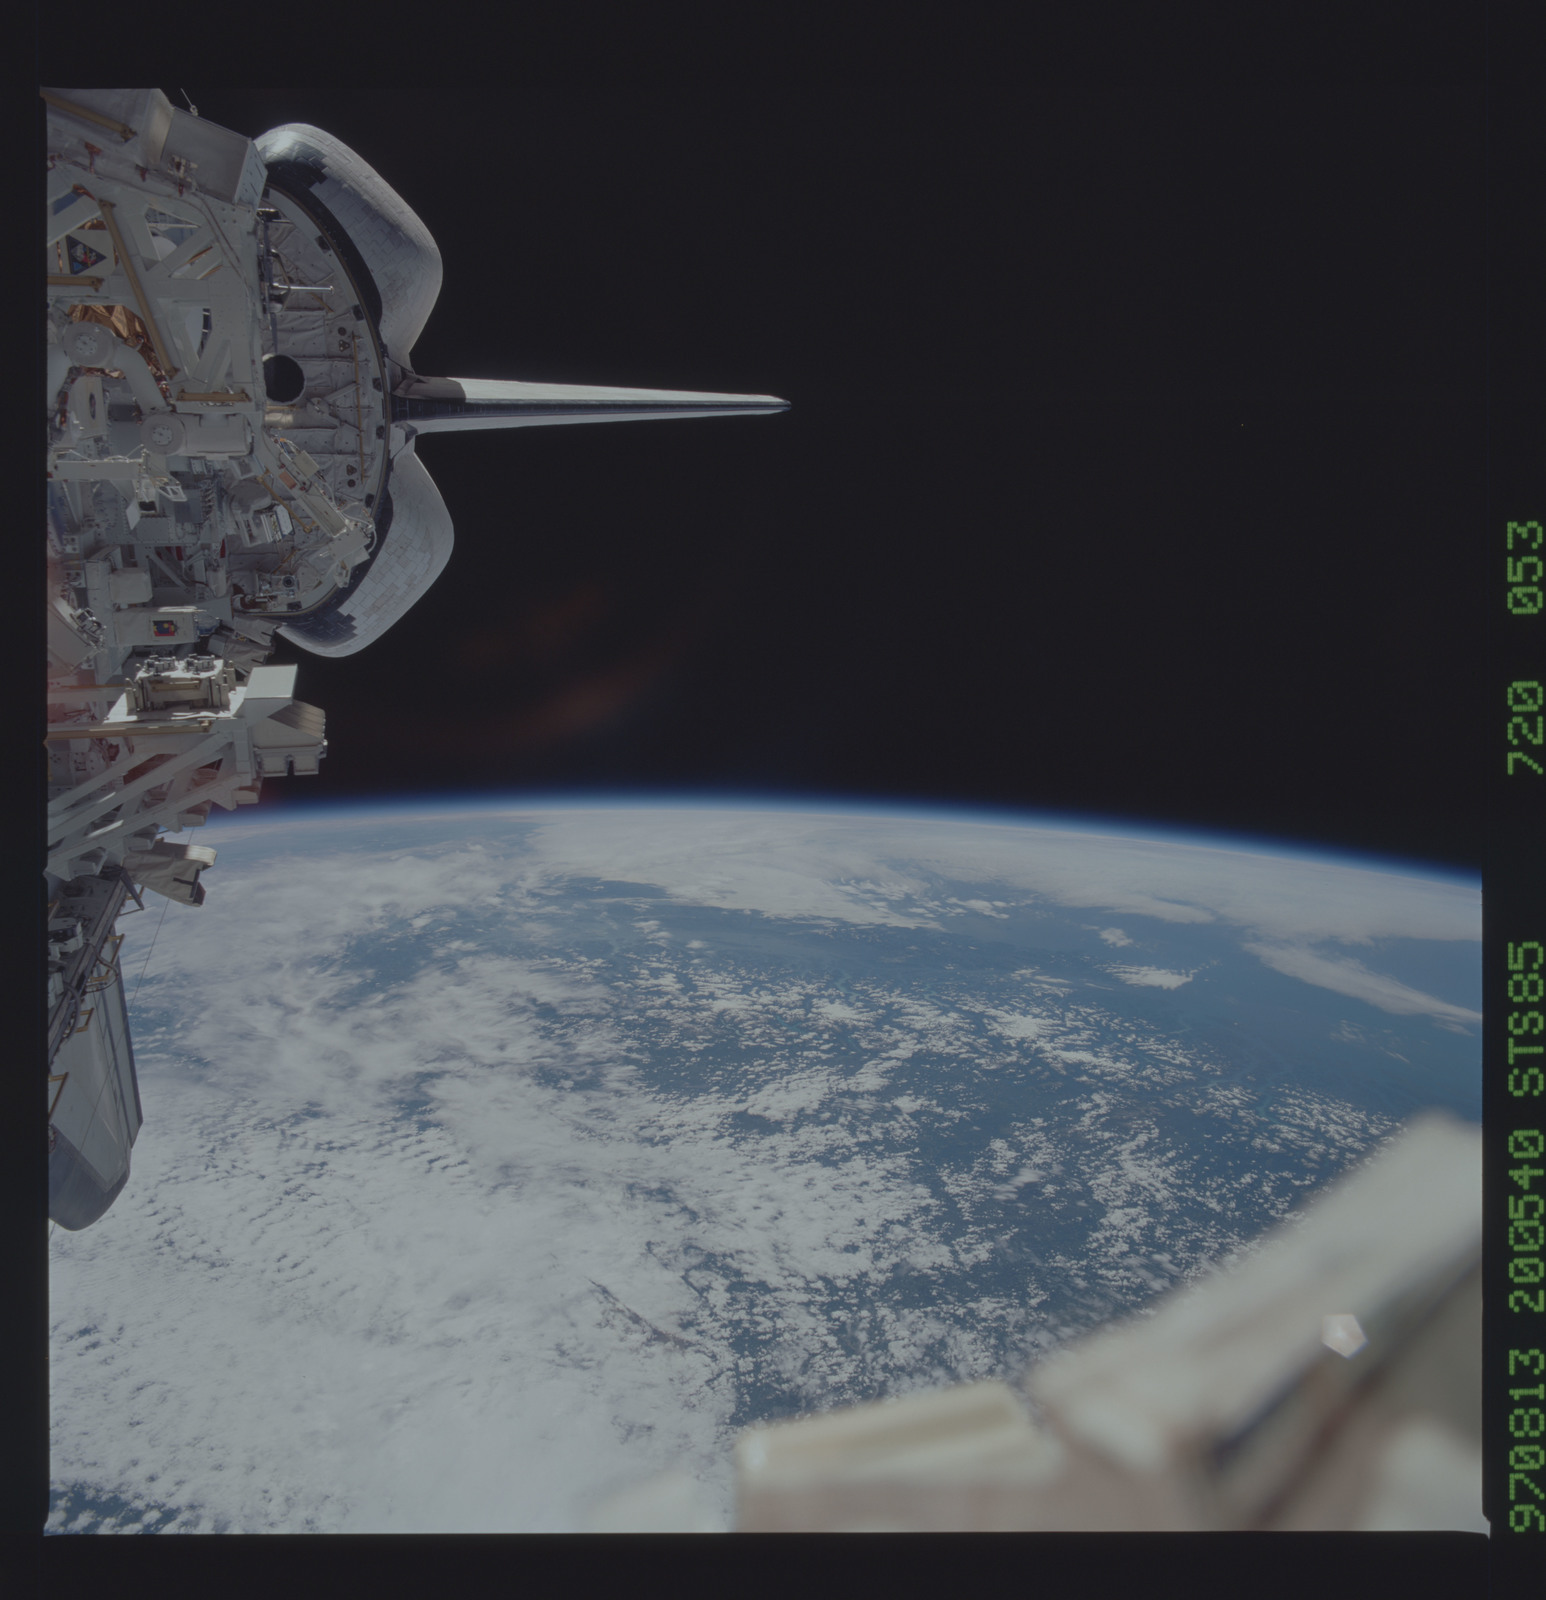 STS085-720-053 - STS-085 - Earth observations taken from orbiter Discovery during STS-85 mission